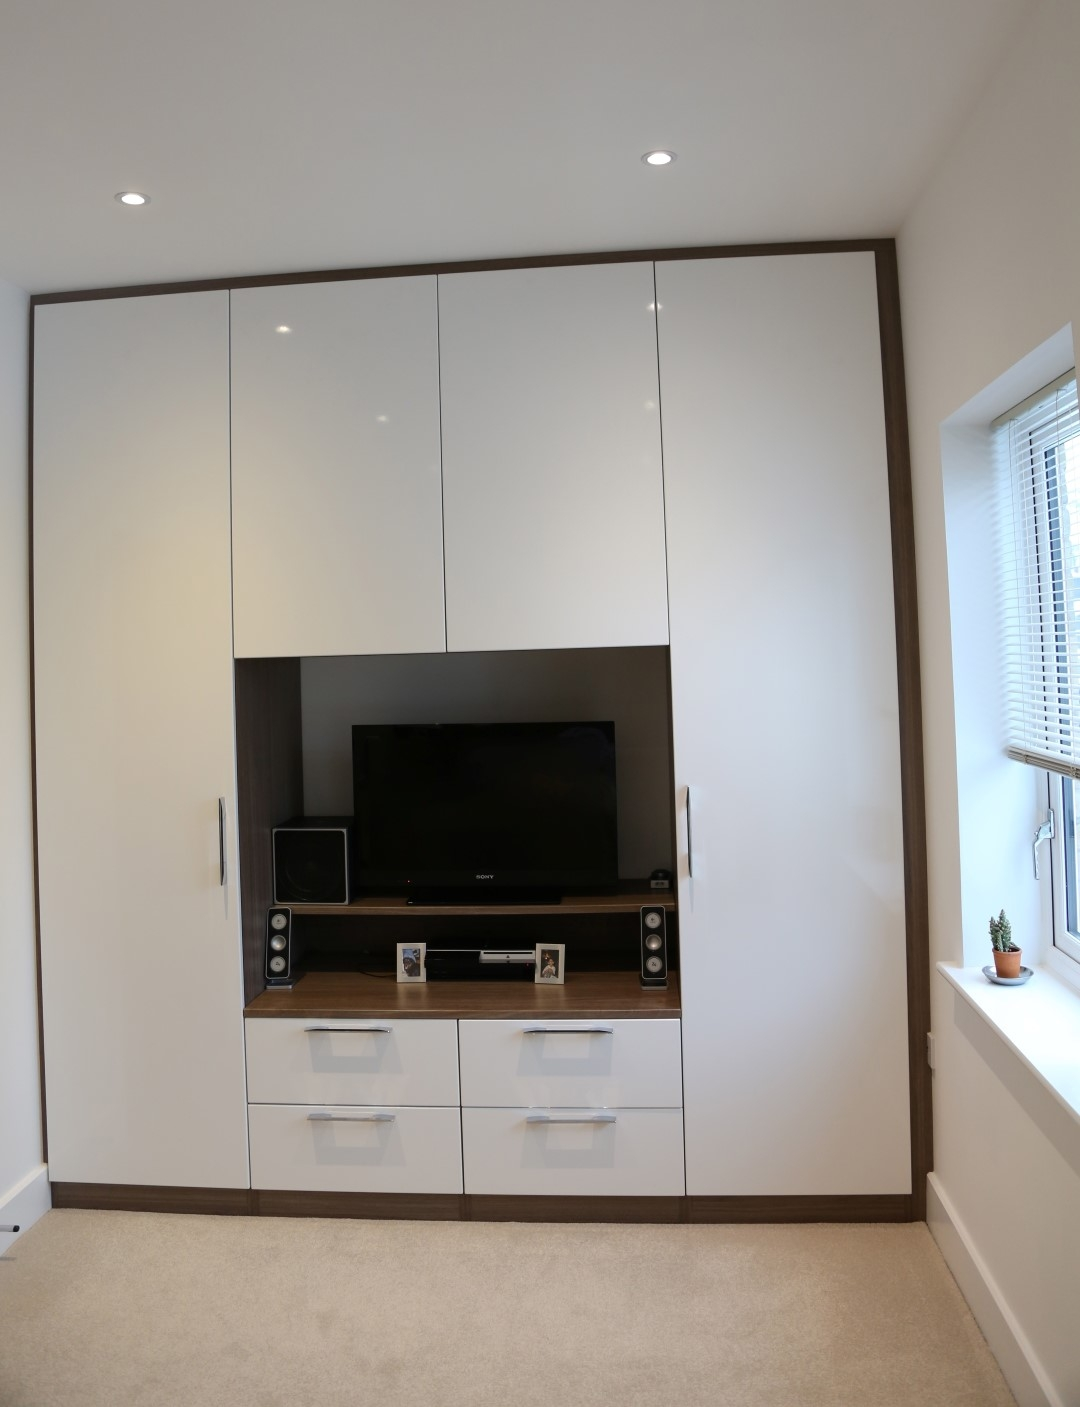 Tv Unit In Wardrobes Home Sweet Home Pinterest Bird Houses Intended For Fitted Wall Units Living Room (#12 of 15)